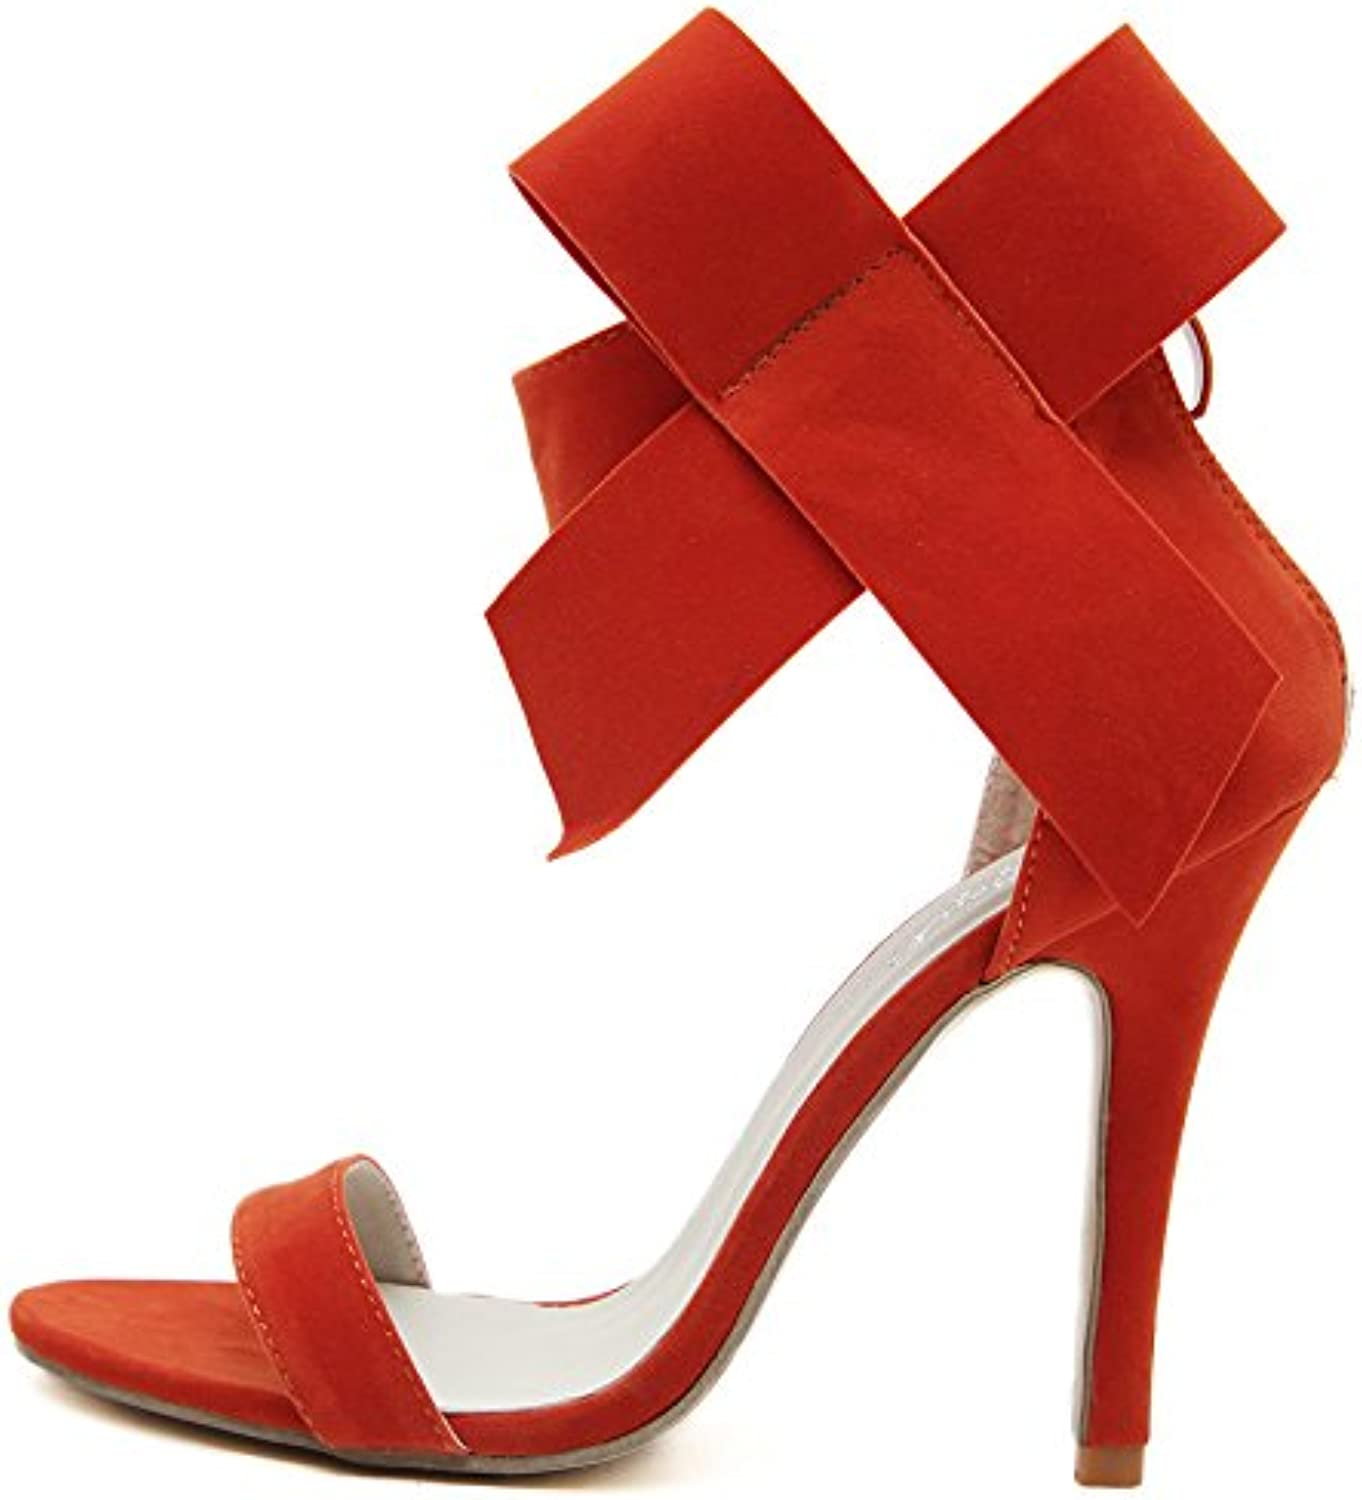 WHW Women's Hole shoes Leatherette Summer Outdoor Dress Casual Walking Platform Sandals,red,40